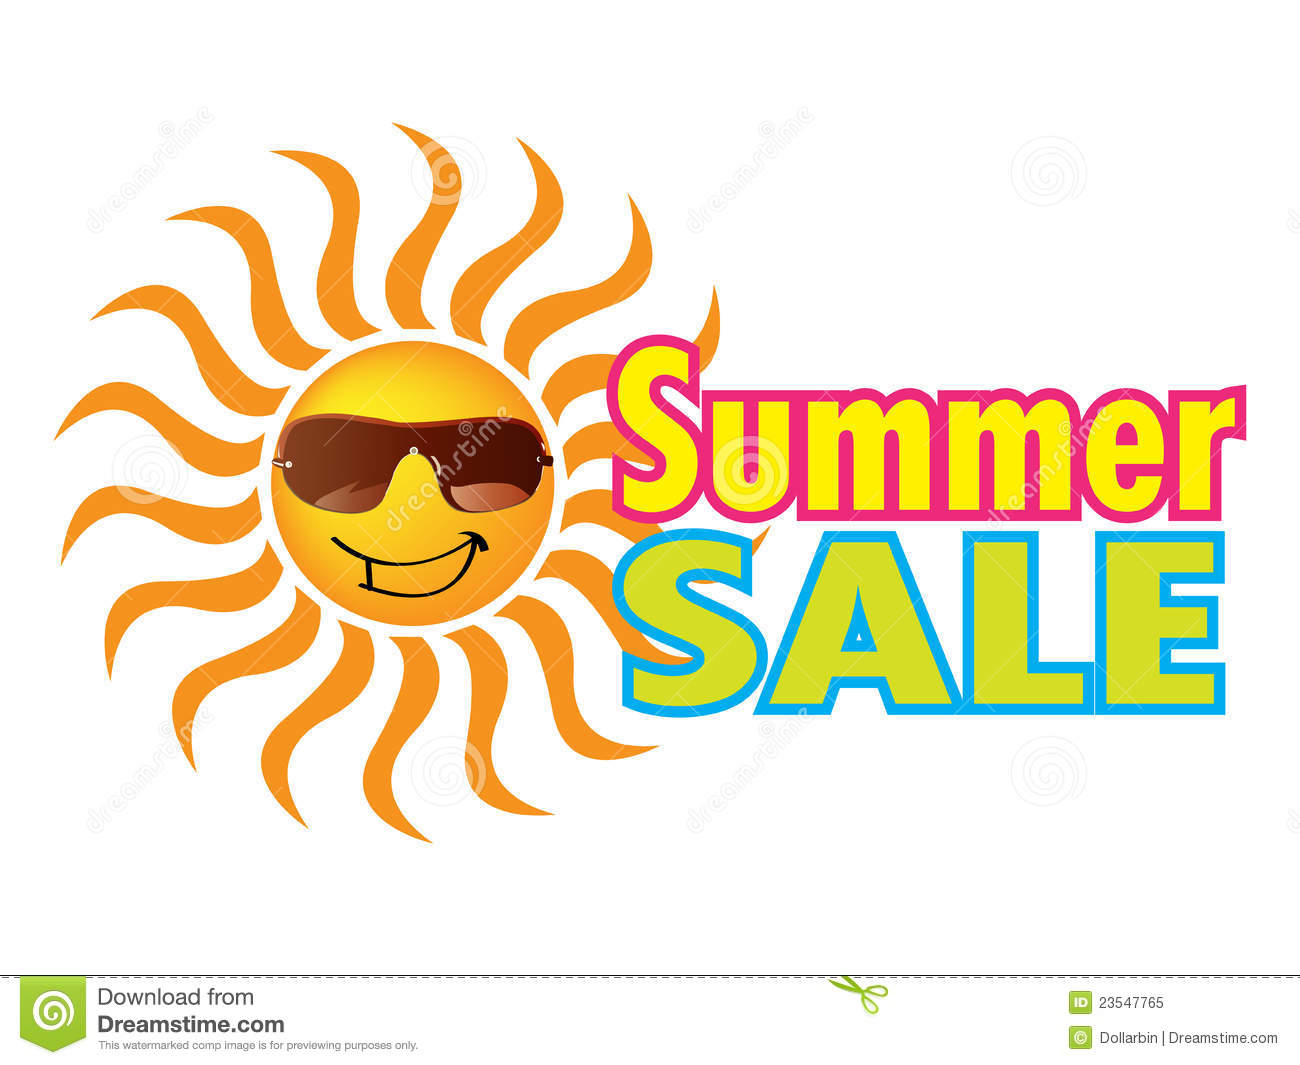 Summer Sale Royalty Free Stock Photo - Image: 23547765